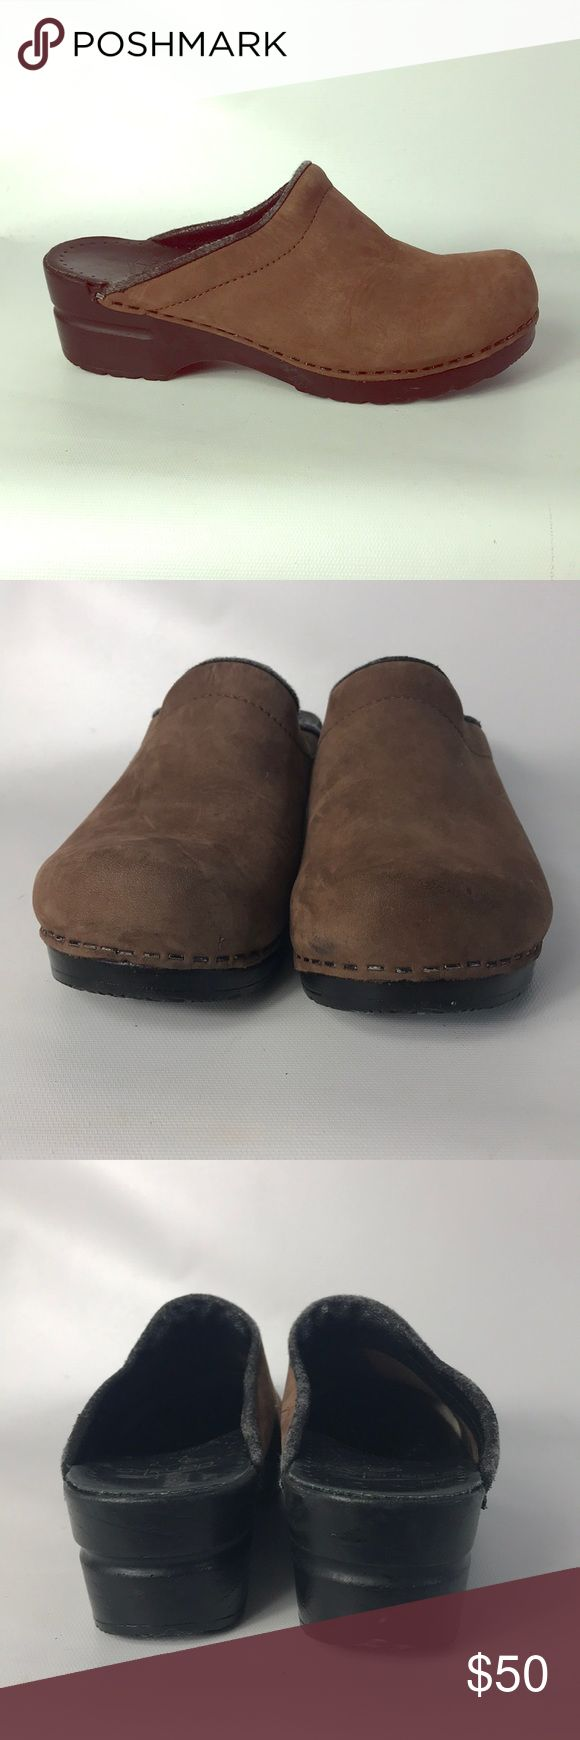 Christmas Sale 🎄 Dansko size 8 brown clogs Condition 8/10, normal amount of scuffs around both shoes from normal wear. Nothing too big or too noticeable, very good shape, size 8/ Europe 38 , if you have any questions or you want to request more pictures, don't hesitate to ask me. Thank you 🙏🏼 Dansko Shoes Mules & Clogs